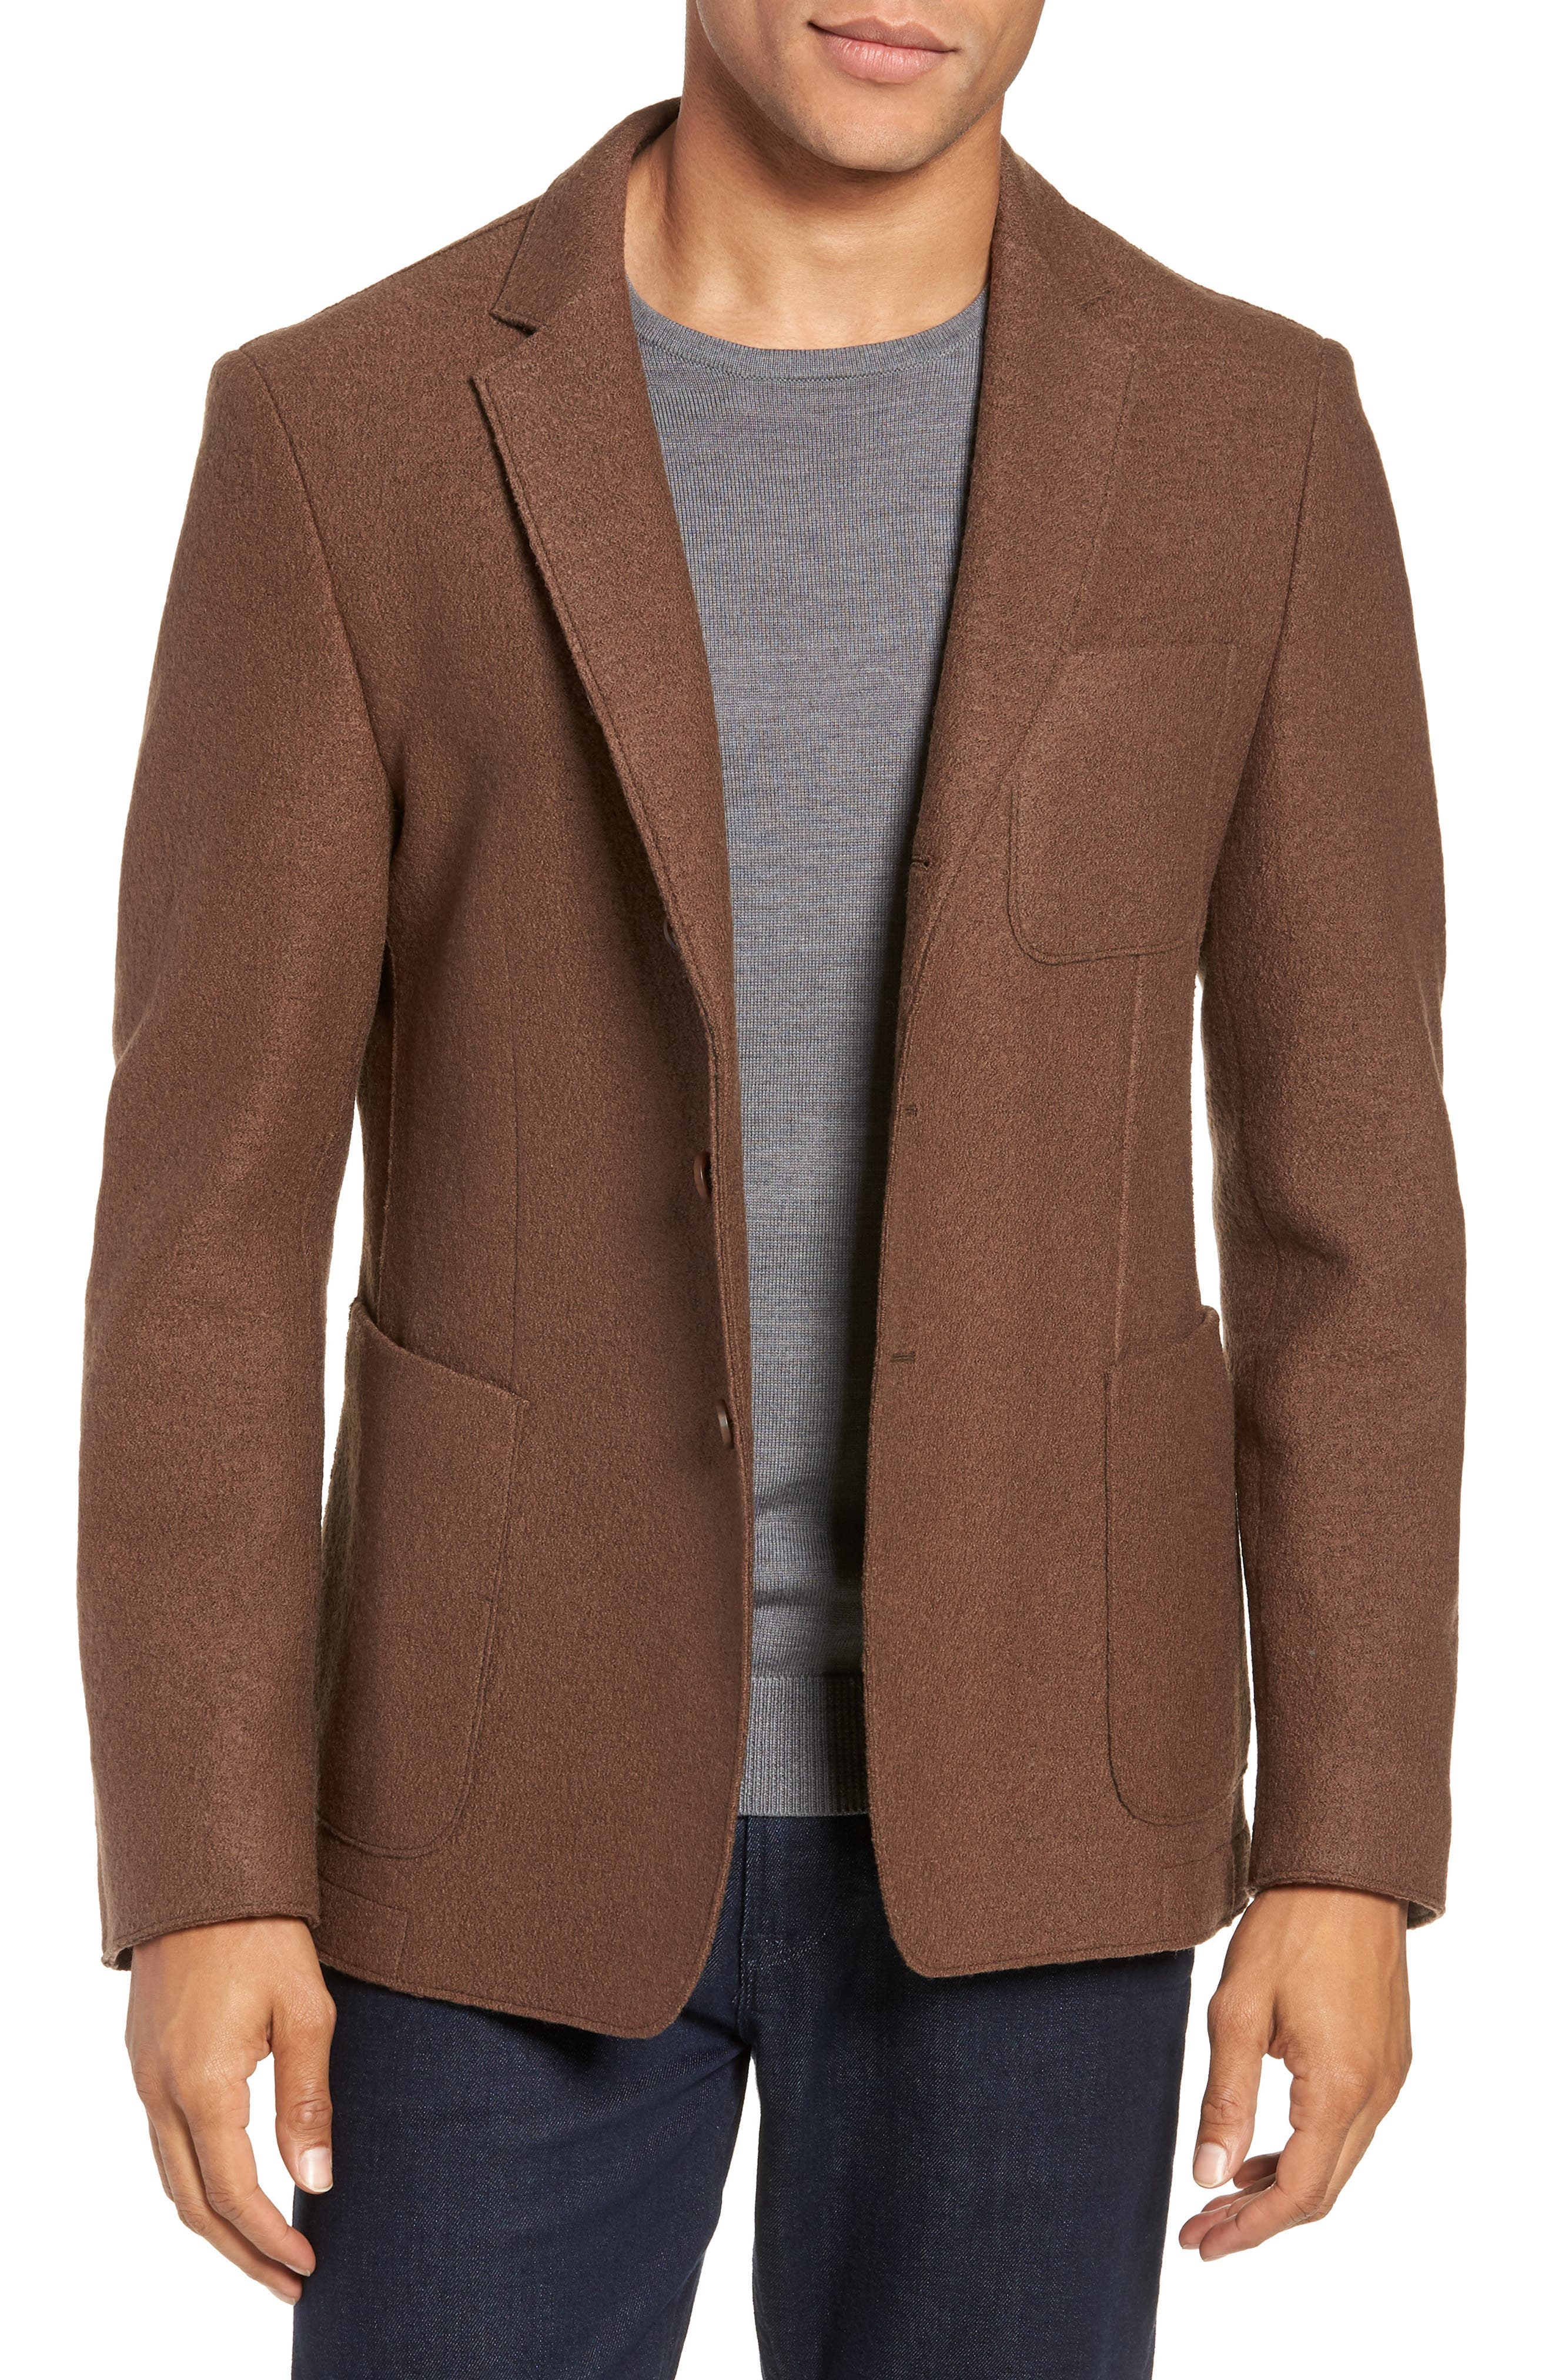 Nixan Trim Fit Wool Sport Coat,                             Main thumbnail 1, color,                             LIGHT/ PASTEL BROWN